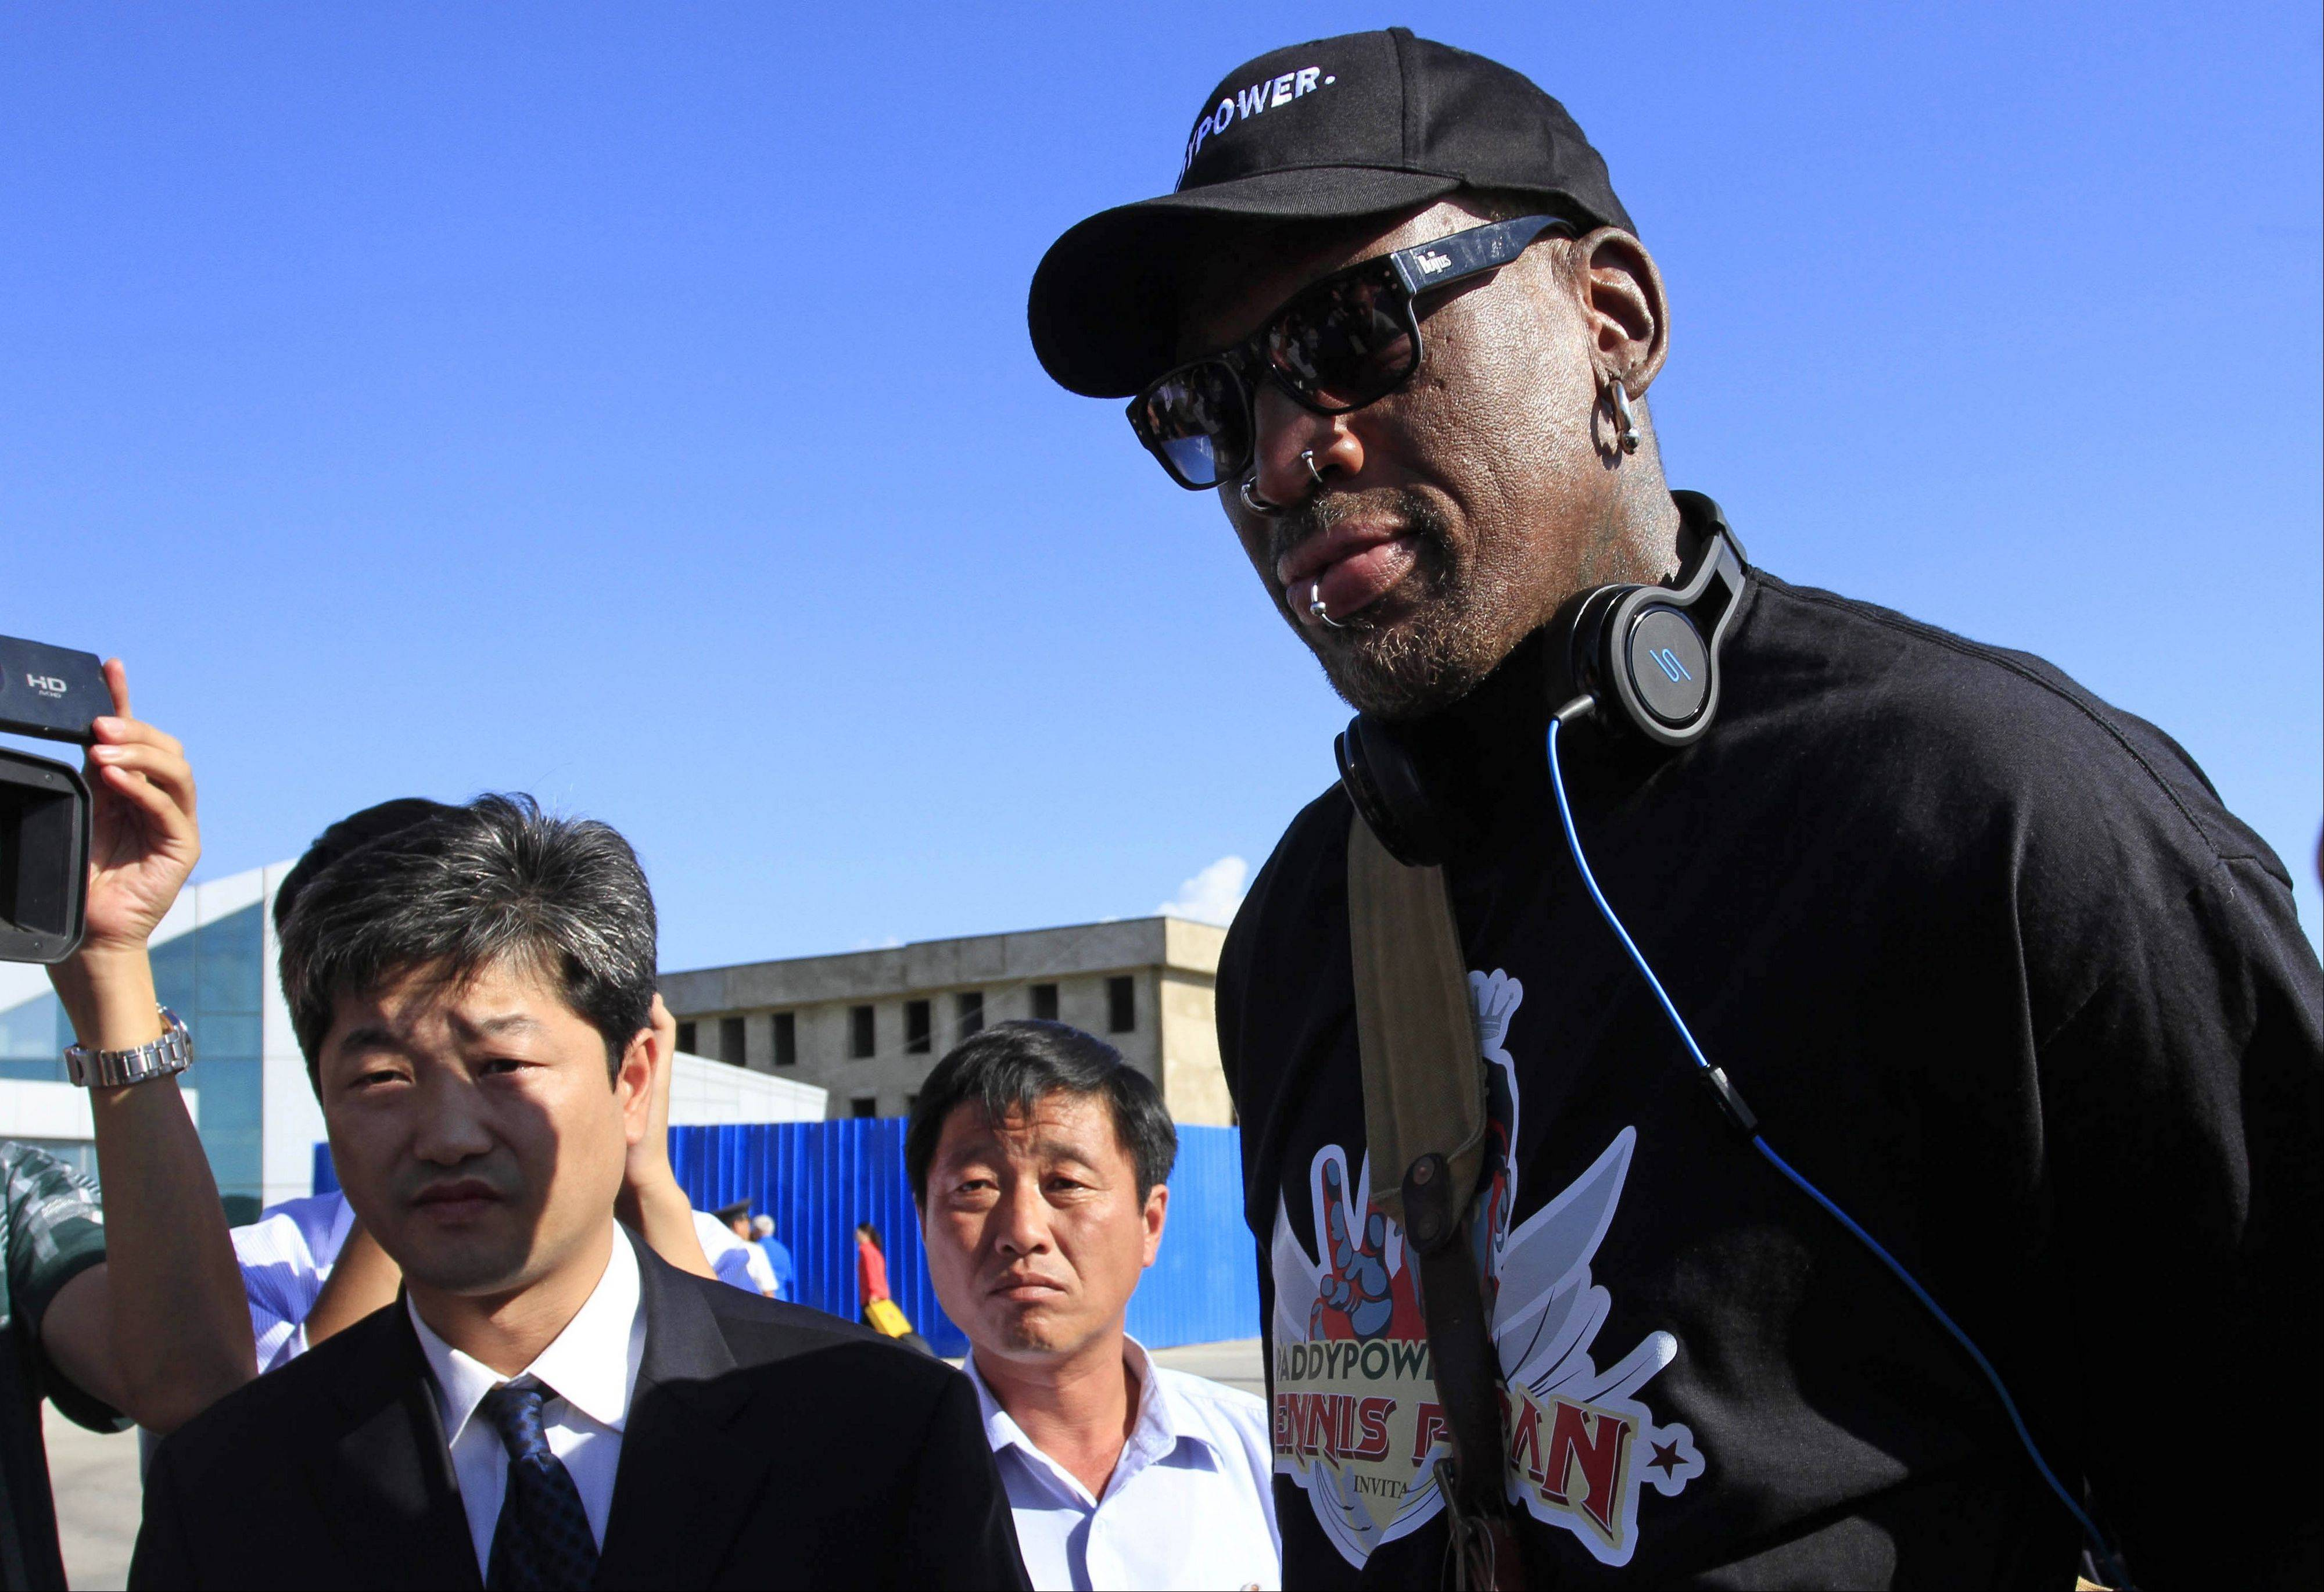 Former Bulls player Dennis Rodman has checked into an alcohol rehabilitation facility to treat his longtime struggle with alcoholism, his agent says.